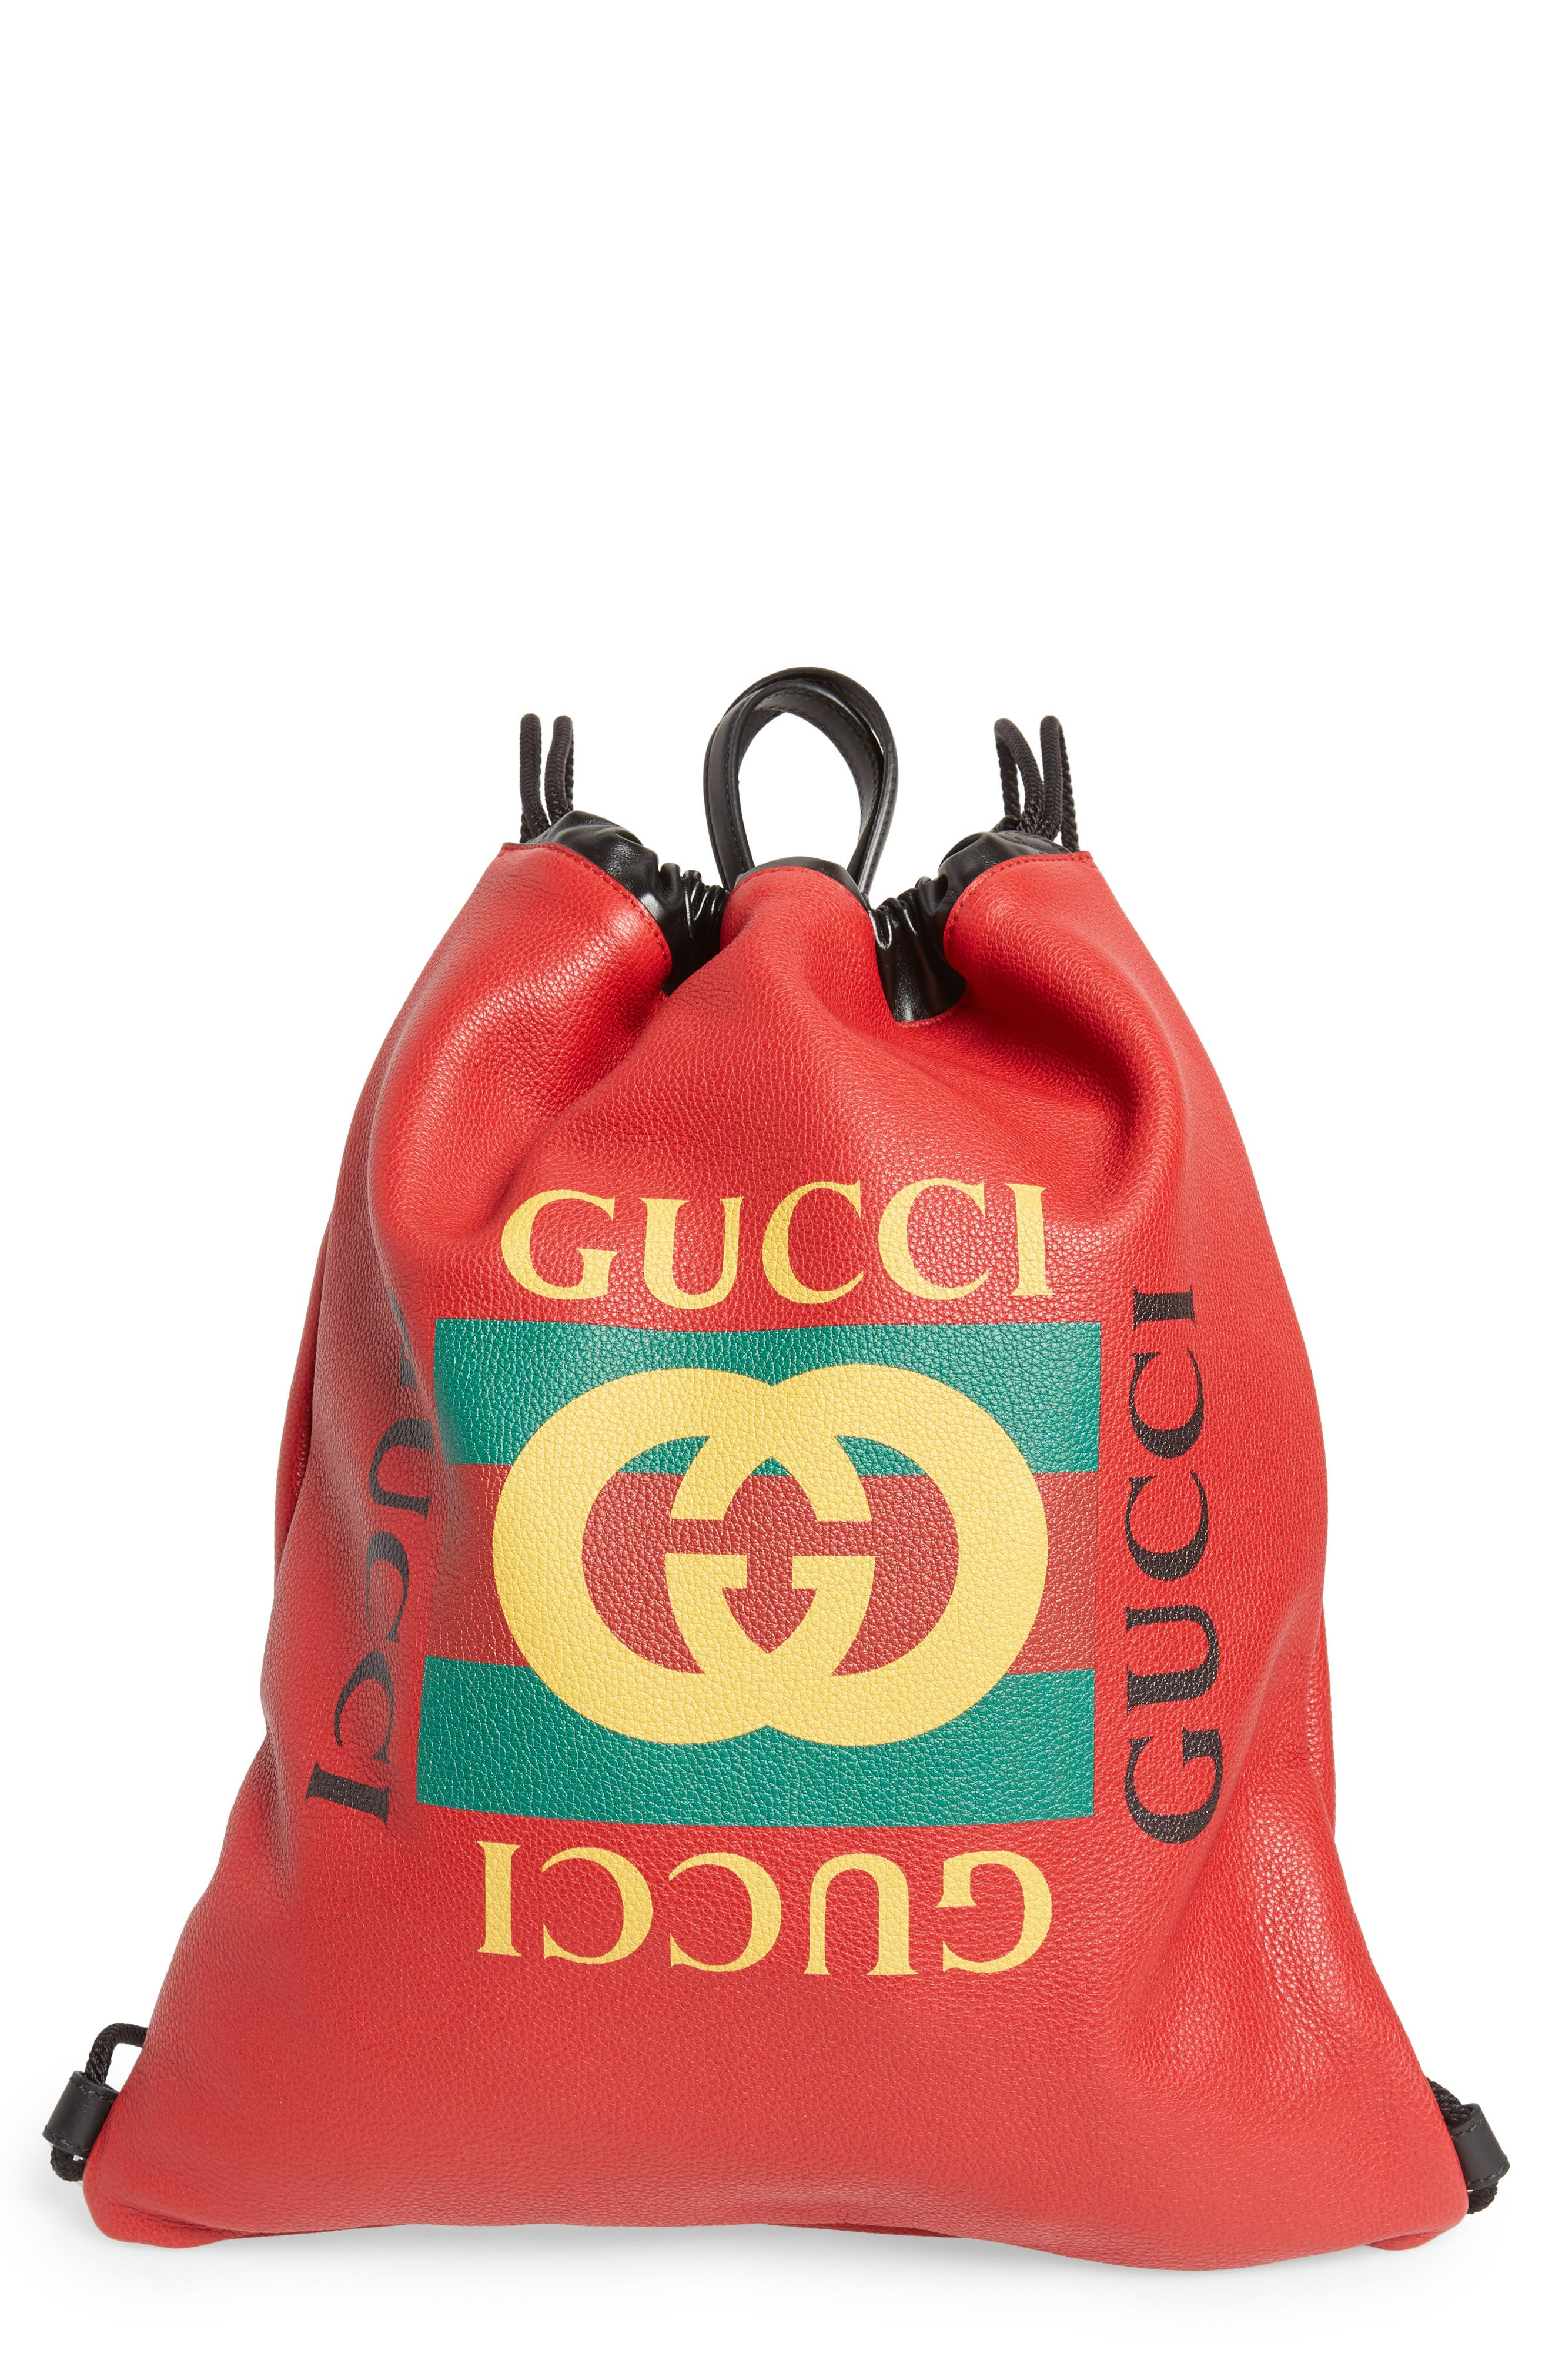 GUCCI,                             Logo Drawstring Leather Backpack,                             Main thumbnail 1, color,                             HIBISCUS RED/ NERO/ VERT